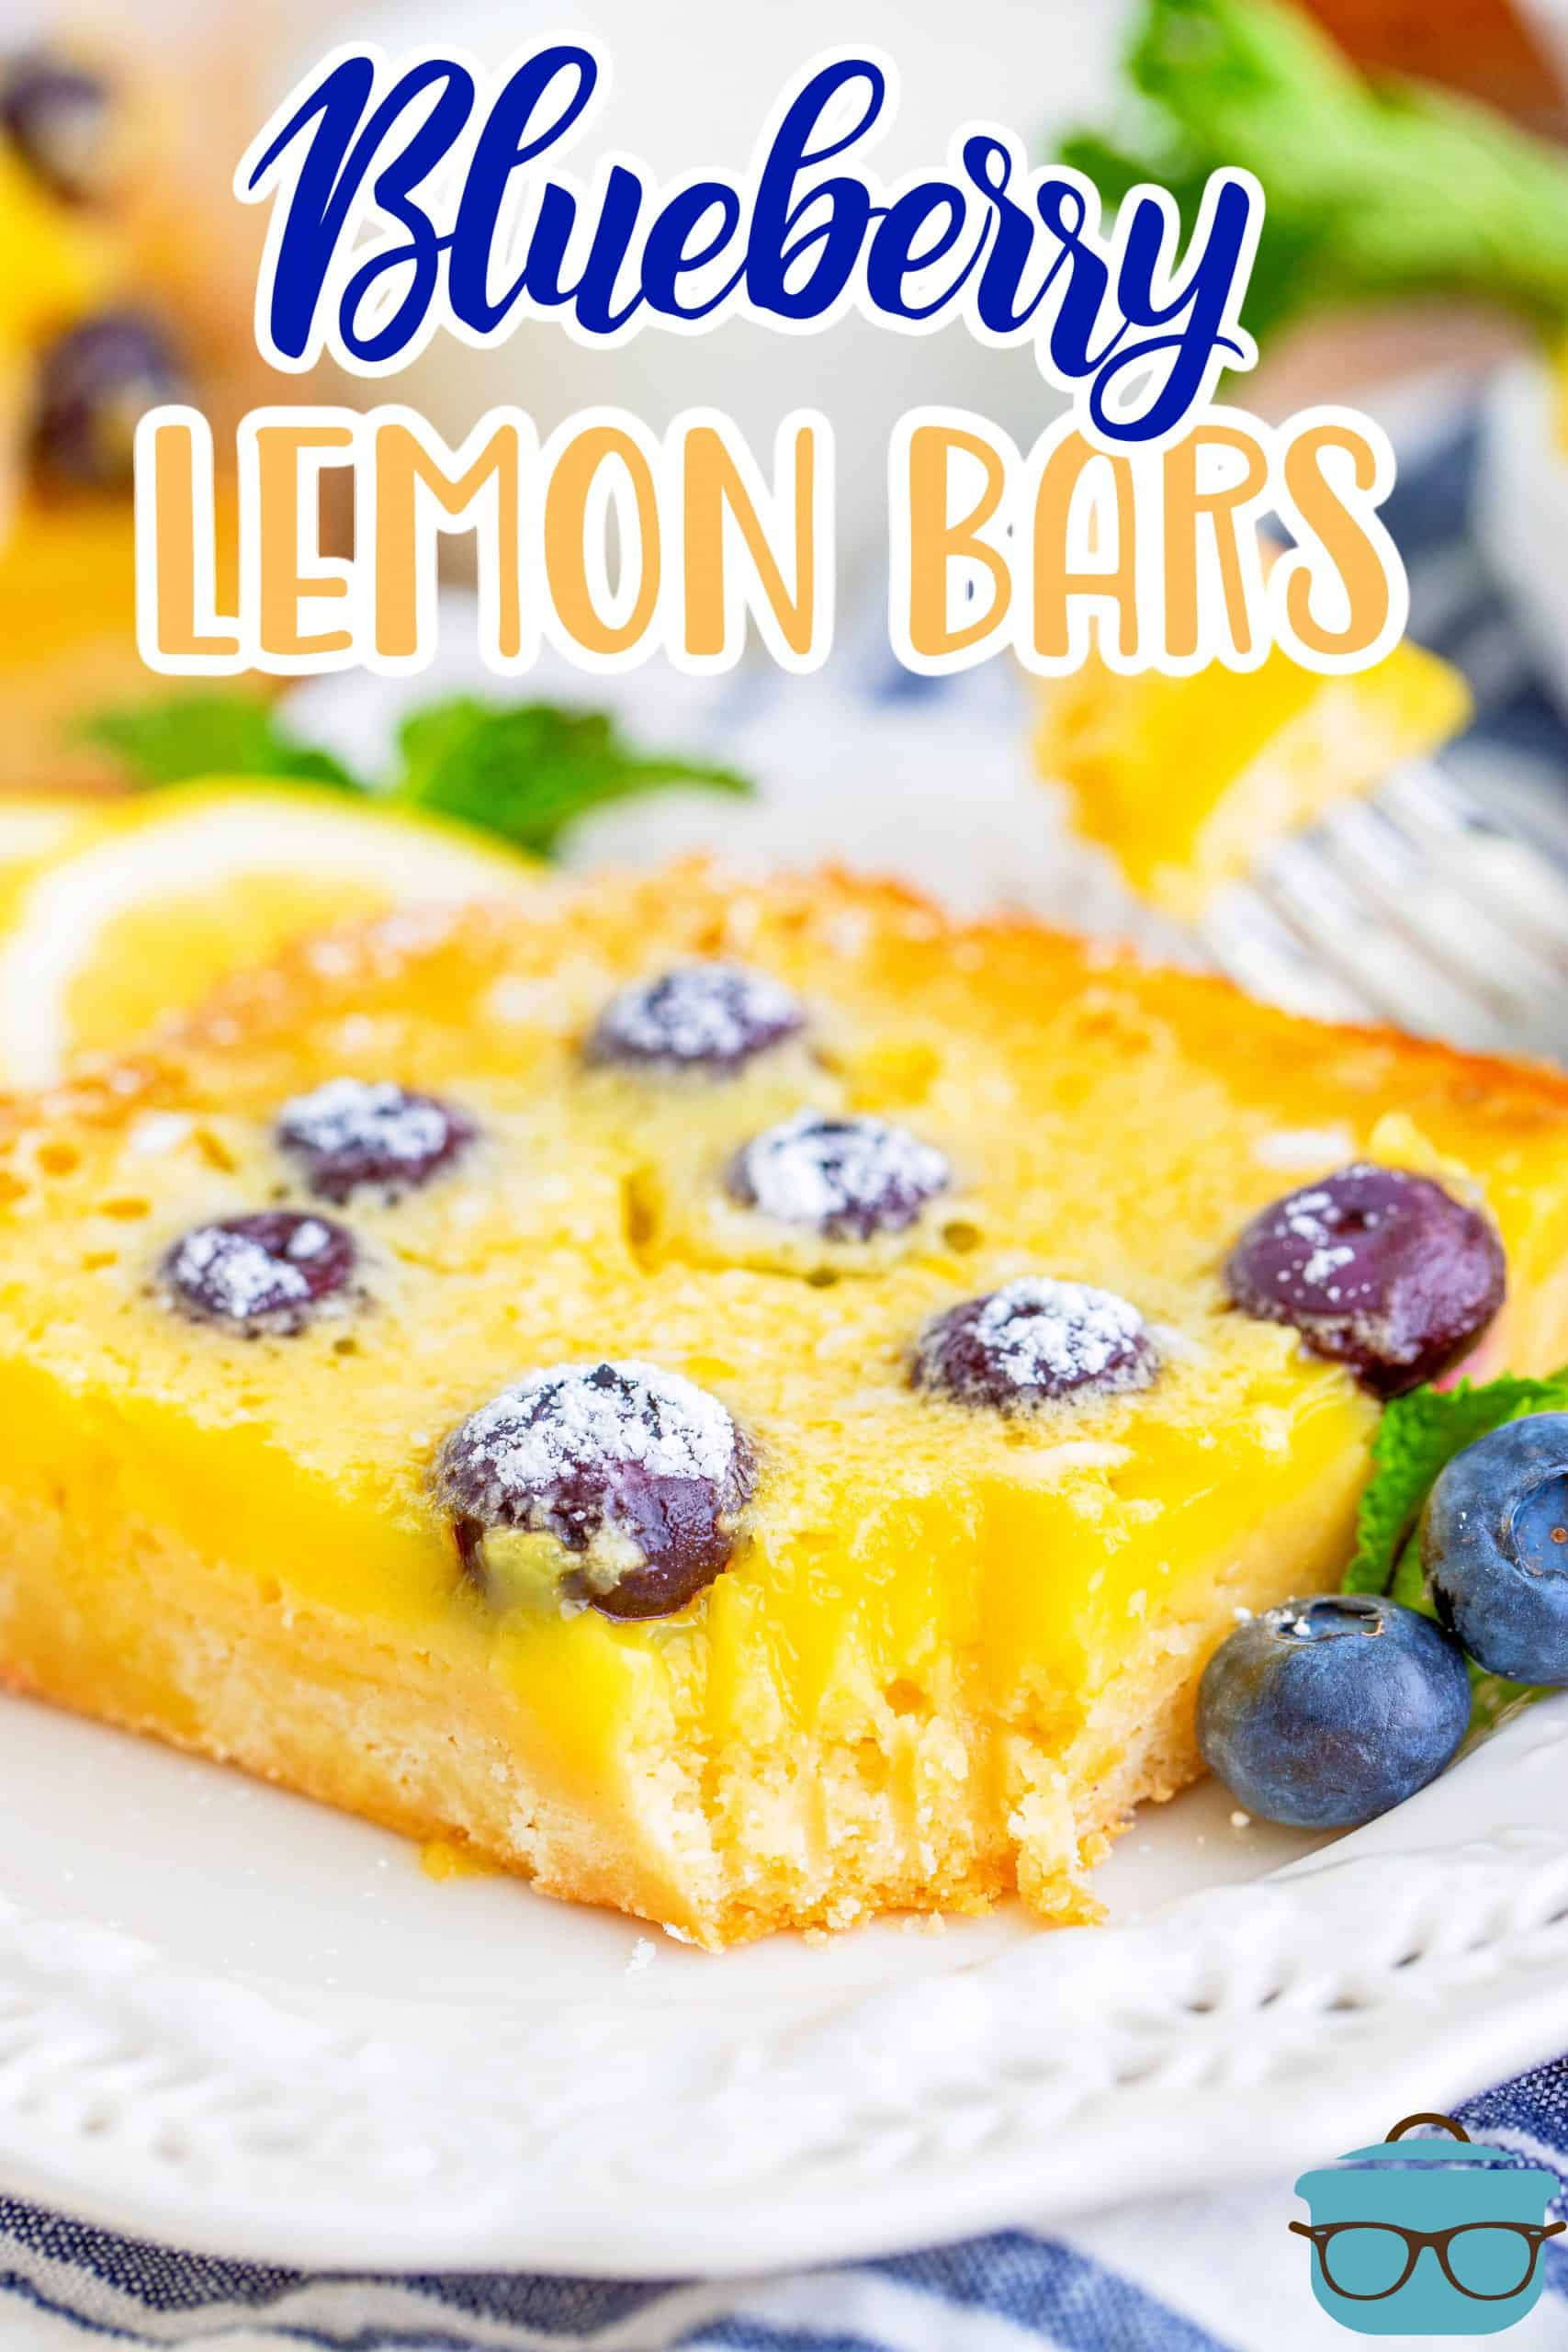 Close up of a bite taken out of one Blueberry Lemon bar with blueberries on white plate.